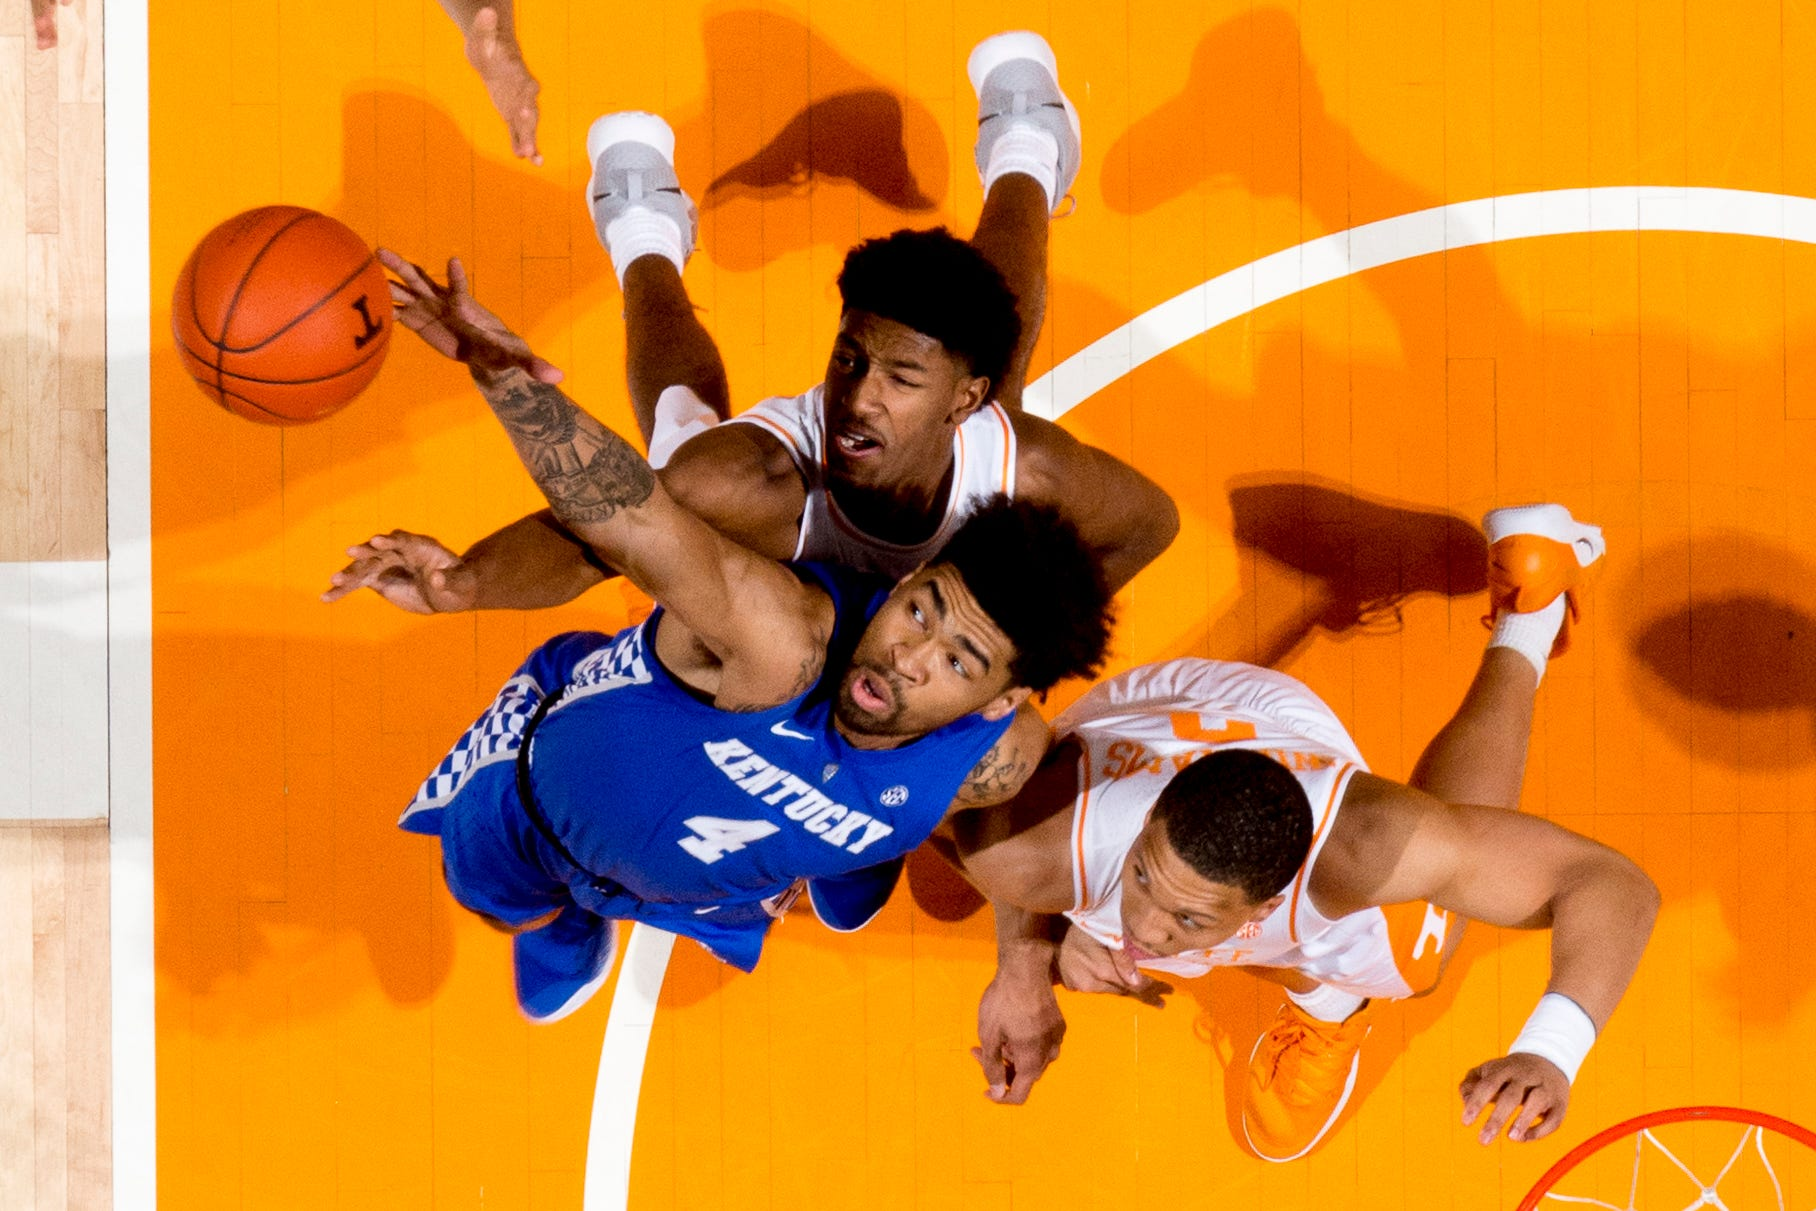 Looking for tickets to the 2019 SEC basketball tournament  The secondary  market is your best bet. The Tennessean - 15 07 PM ET March 11 56f90a92a